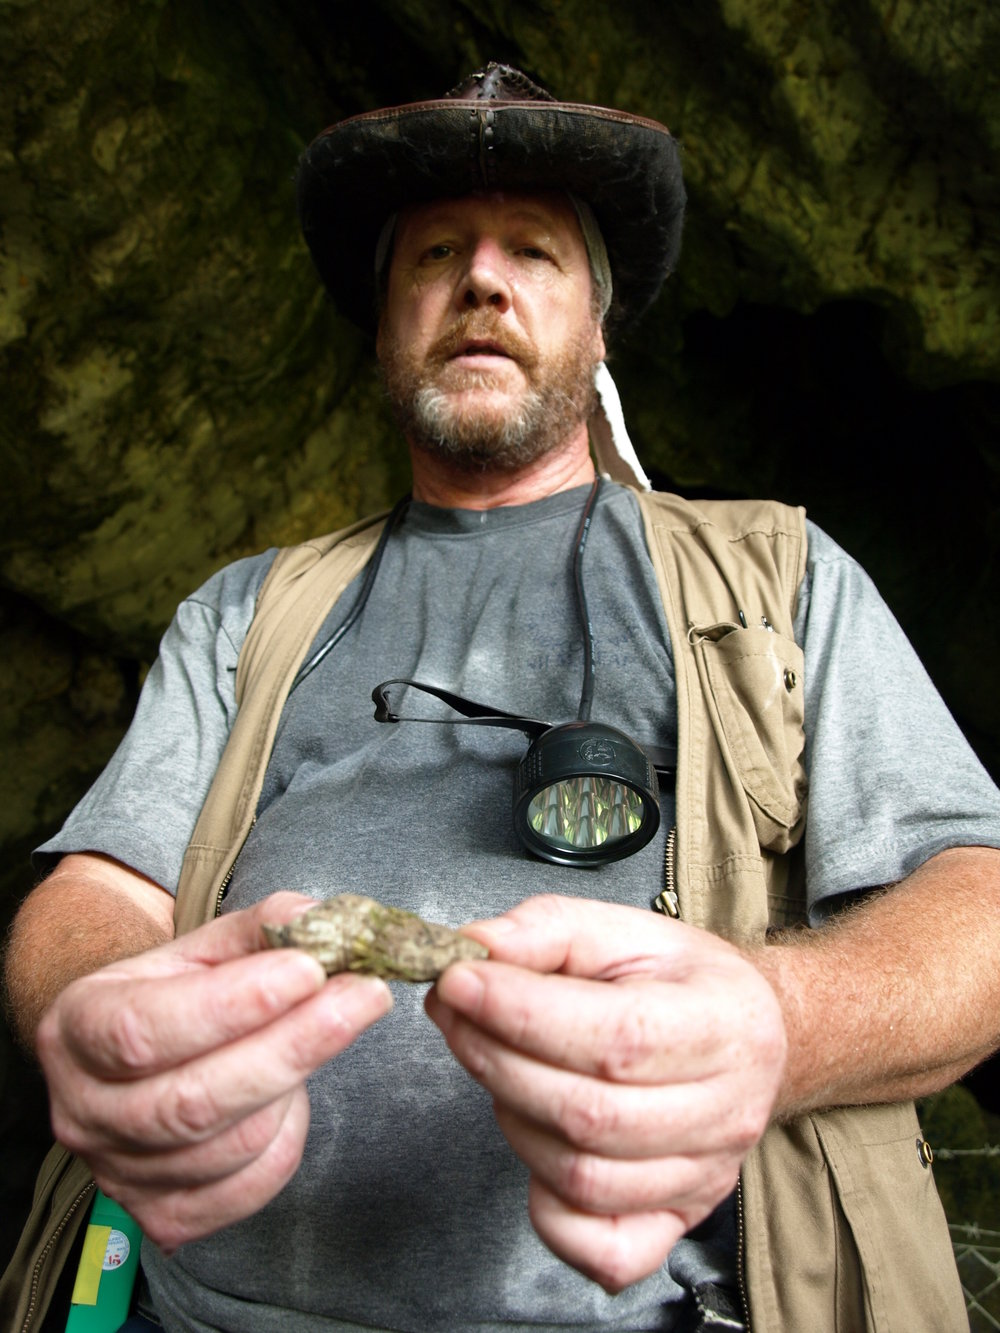 James holding a sea shell found in a cave.